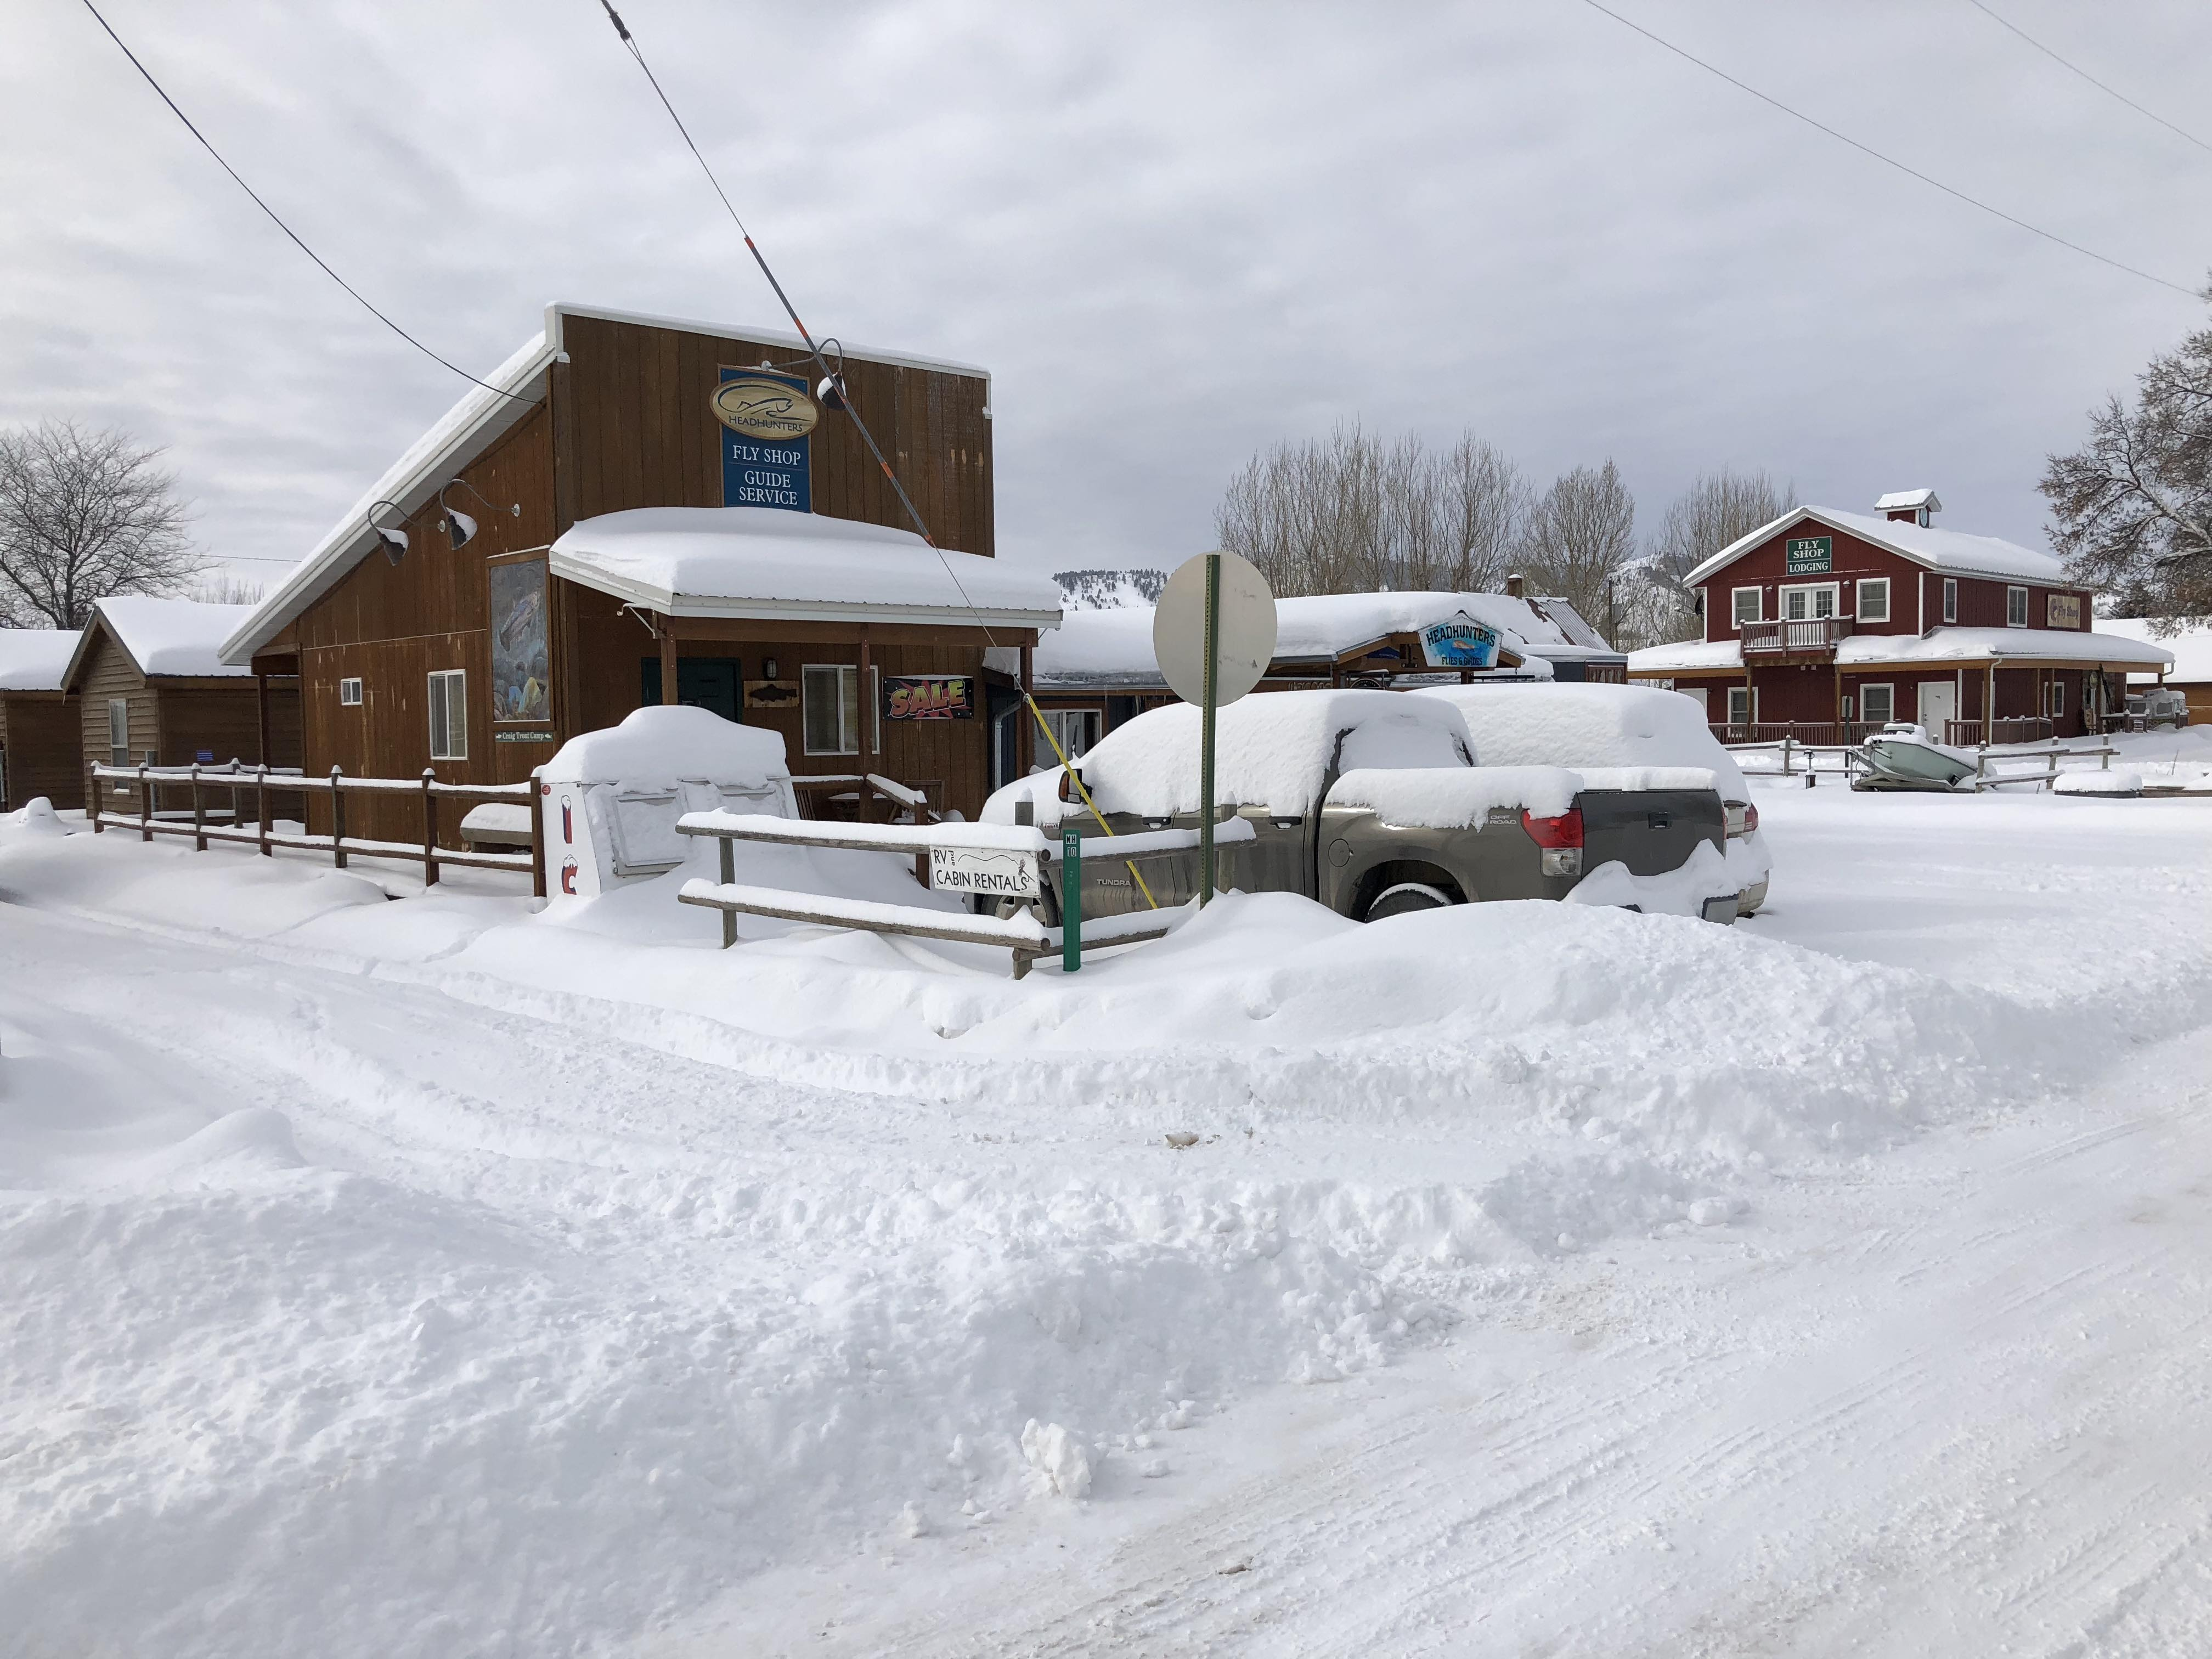 March 1st, more snow, weekend update